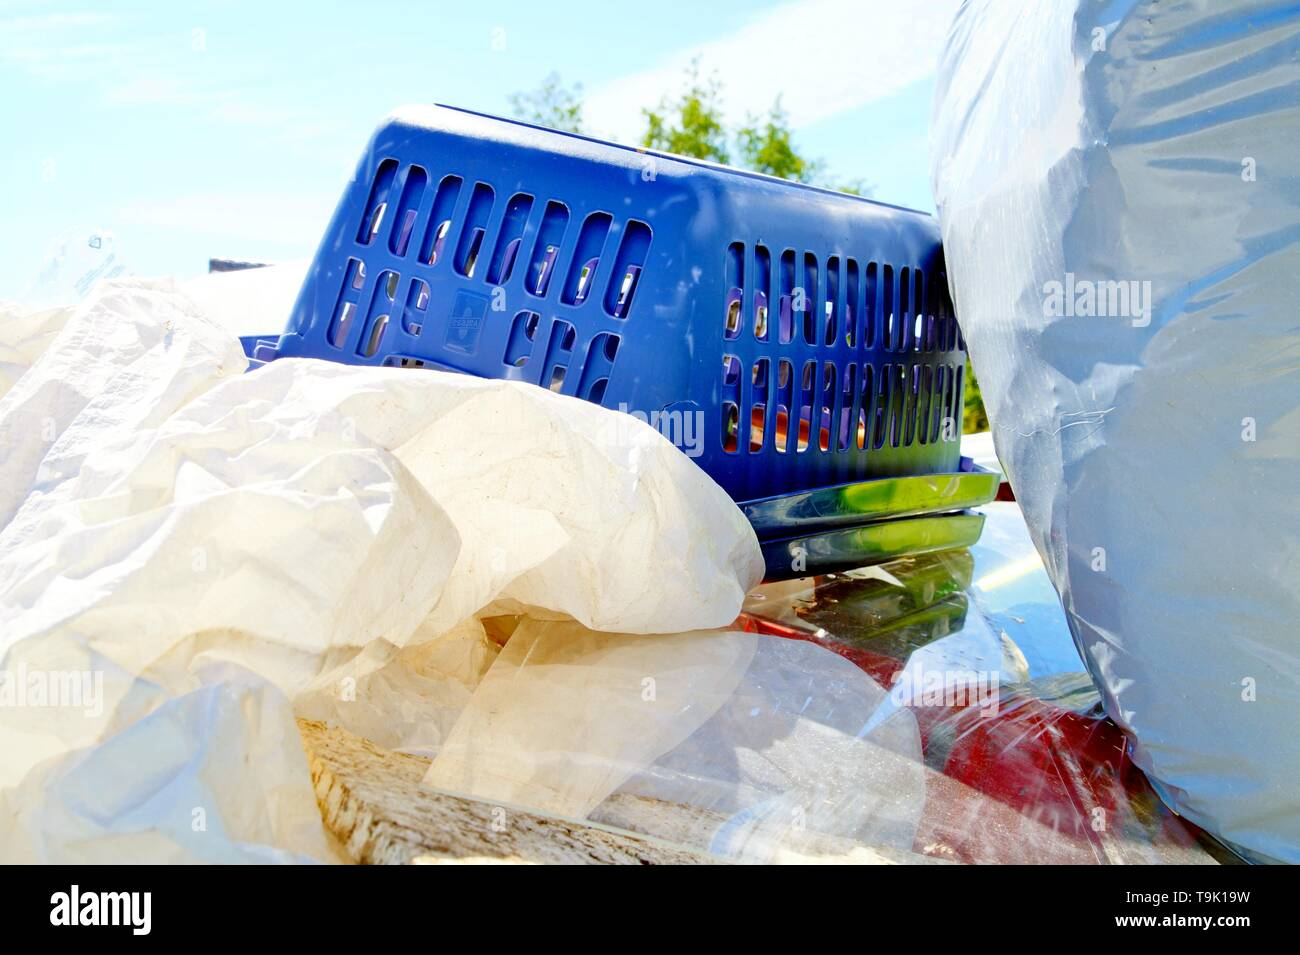 Large amount of used plastic about to be recycled. plastic Waste Disposal concept for plastic consumerism, modernization, digital age, urbanization, e - Stock Image